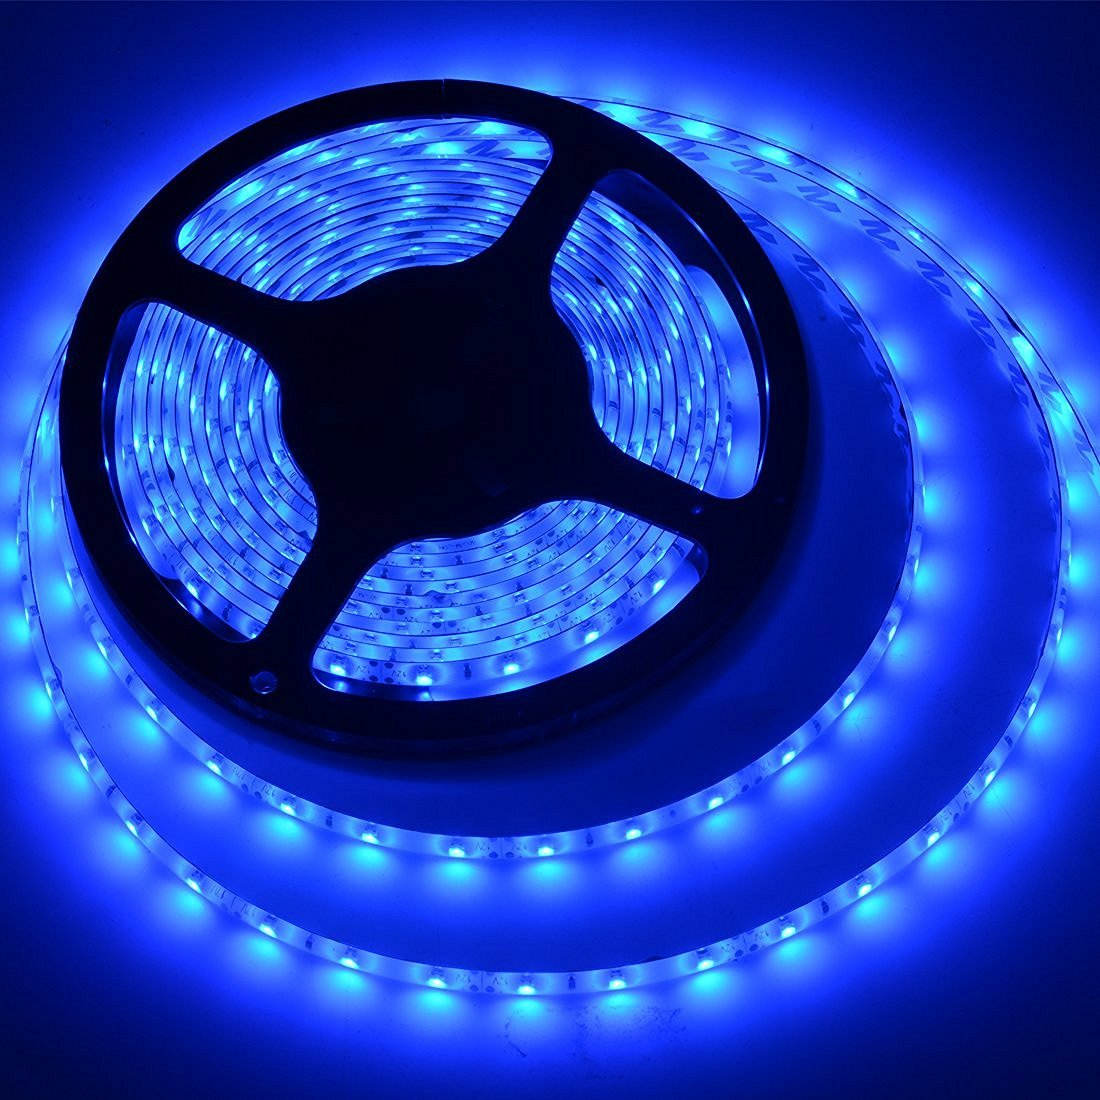 Amazon meili led light strip smd 3528 164 ft 5 meter amazon meili led light strip smd 3528 164 ft 5 meter waterproof 300 leds 12v flexible rope light no power supply blue home improvement aloadofball